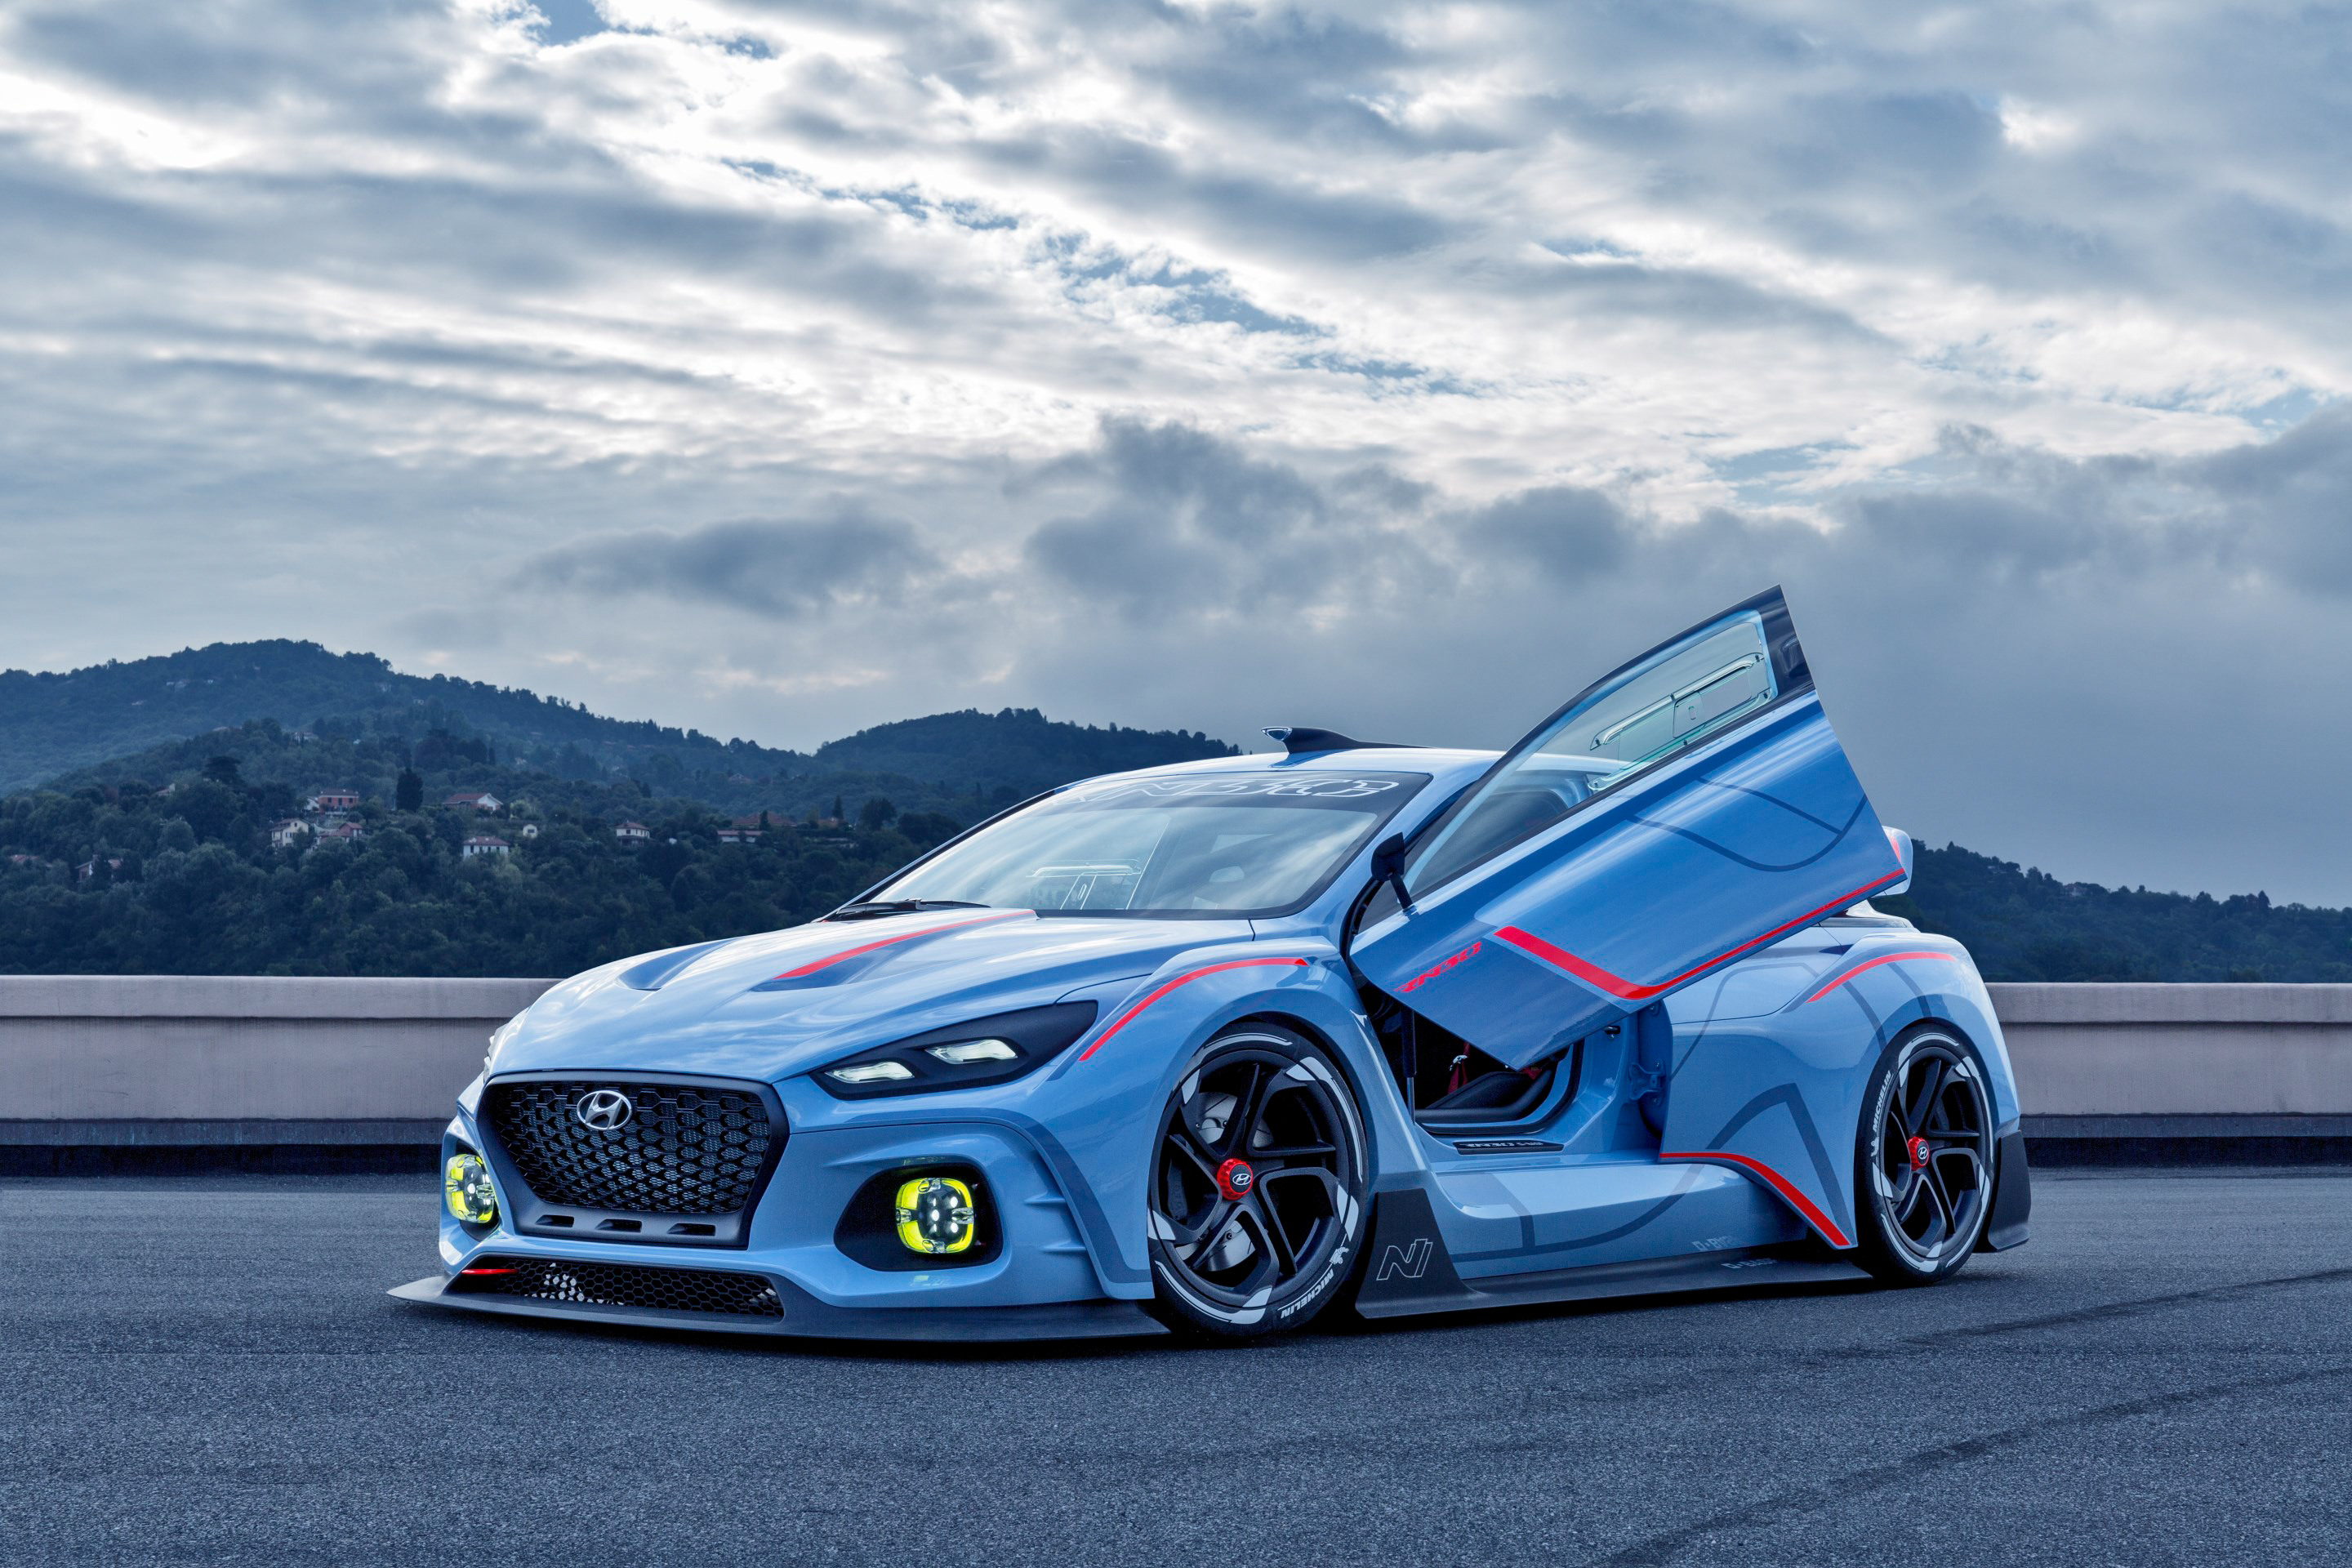 High-Performance Hyundai N Concept Revealed at Paris Motor Show